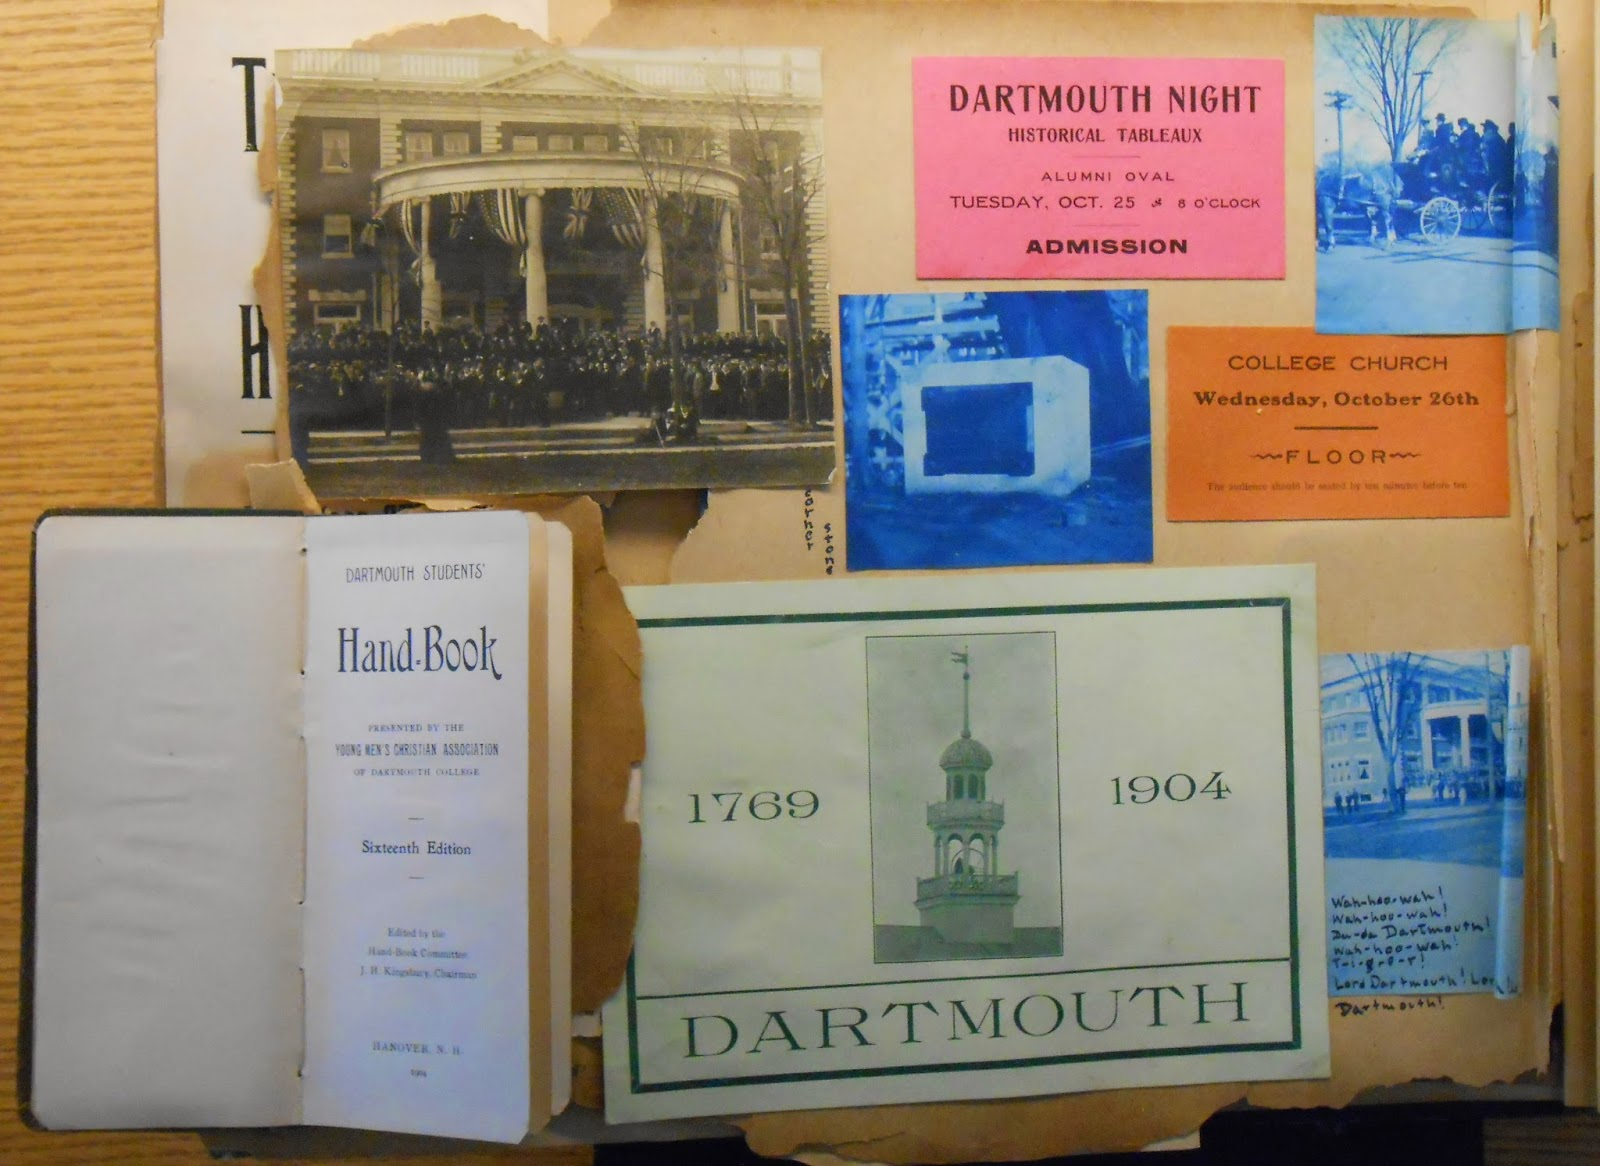 A selection of paper ephemera including an admission ticket to Dartmouth Night historical tableaux and a student hand-book.